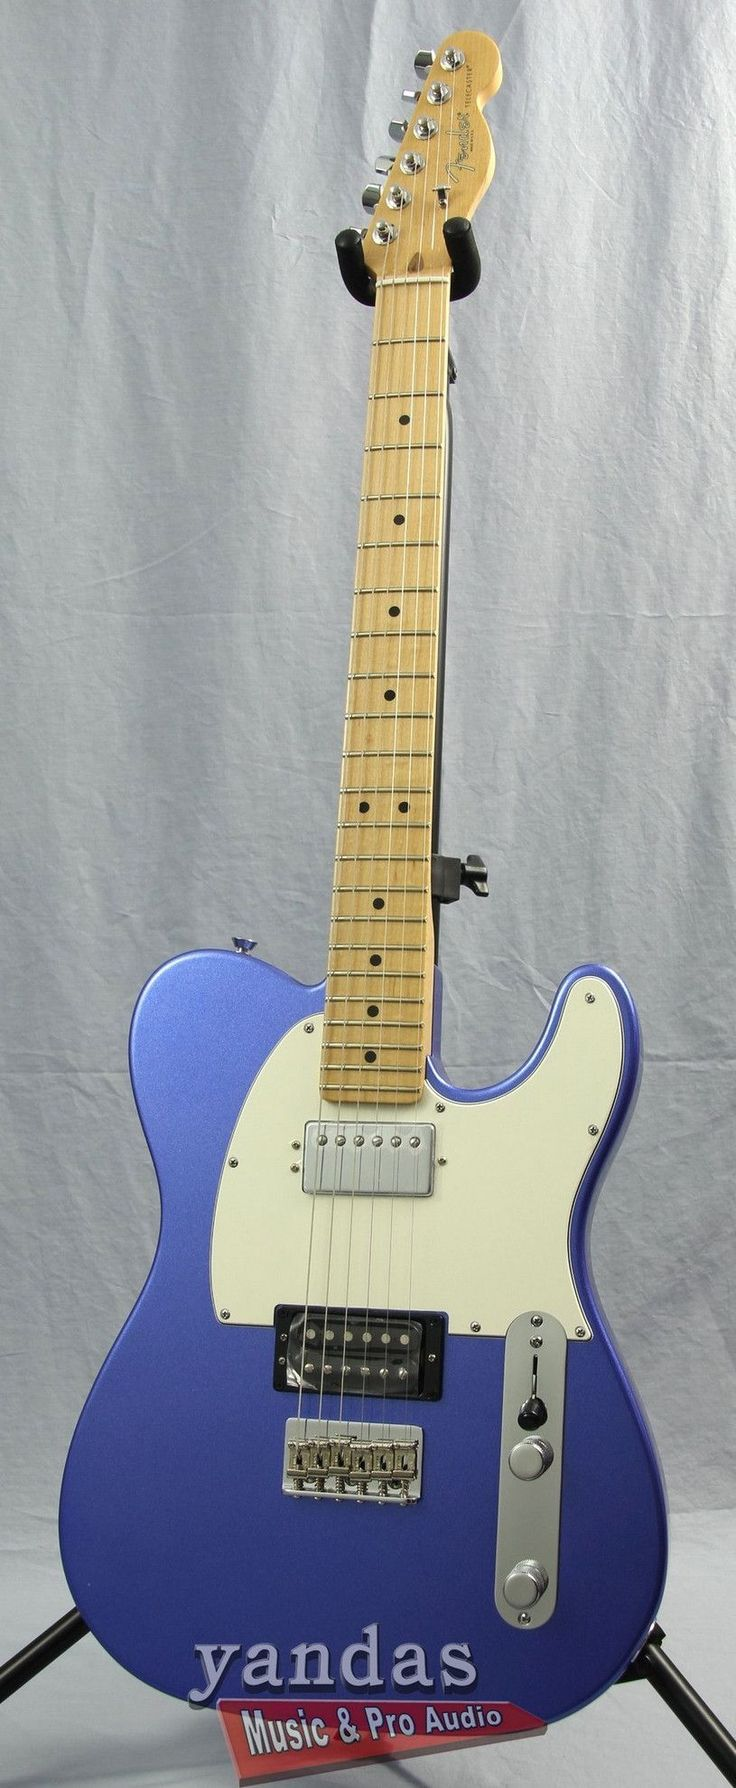 Fender American Standard Telecaster Electric Guitar The Fender Telecaster has been the go-to guitar for players in all genres of music for decades and now it's upgraded with a comfortable new body con